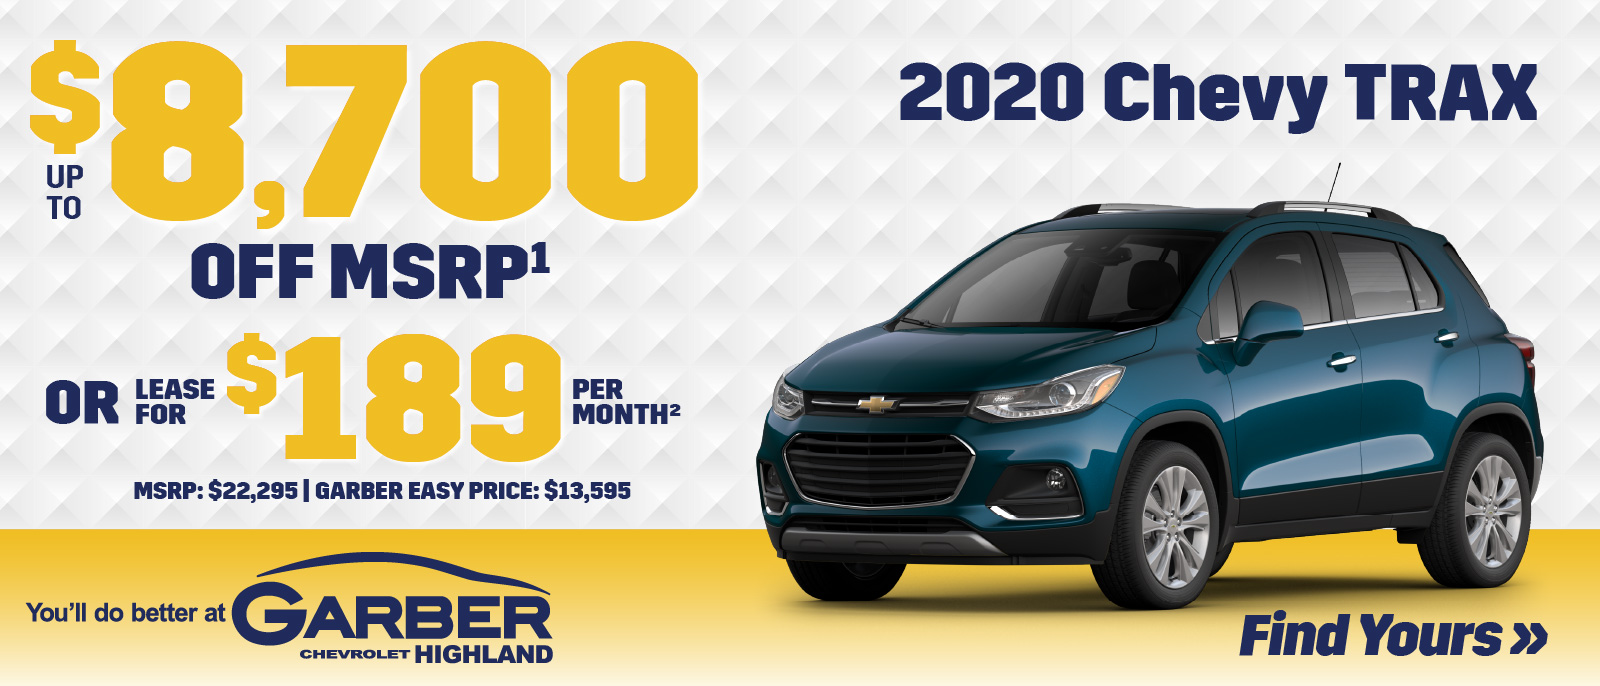 2020 Chevy Trax | SAVE up to $8700 off MSRP or LEASE for $189 per month | MSRP $22,295 | GARBER EASY PRICE $13,595